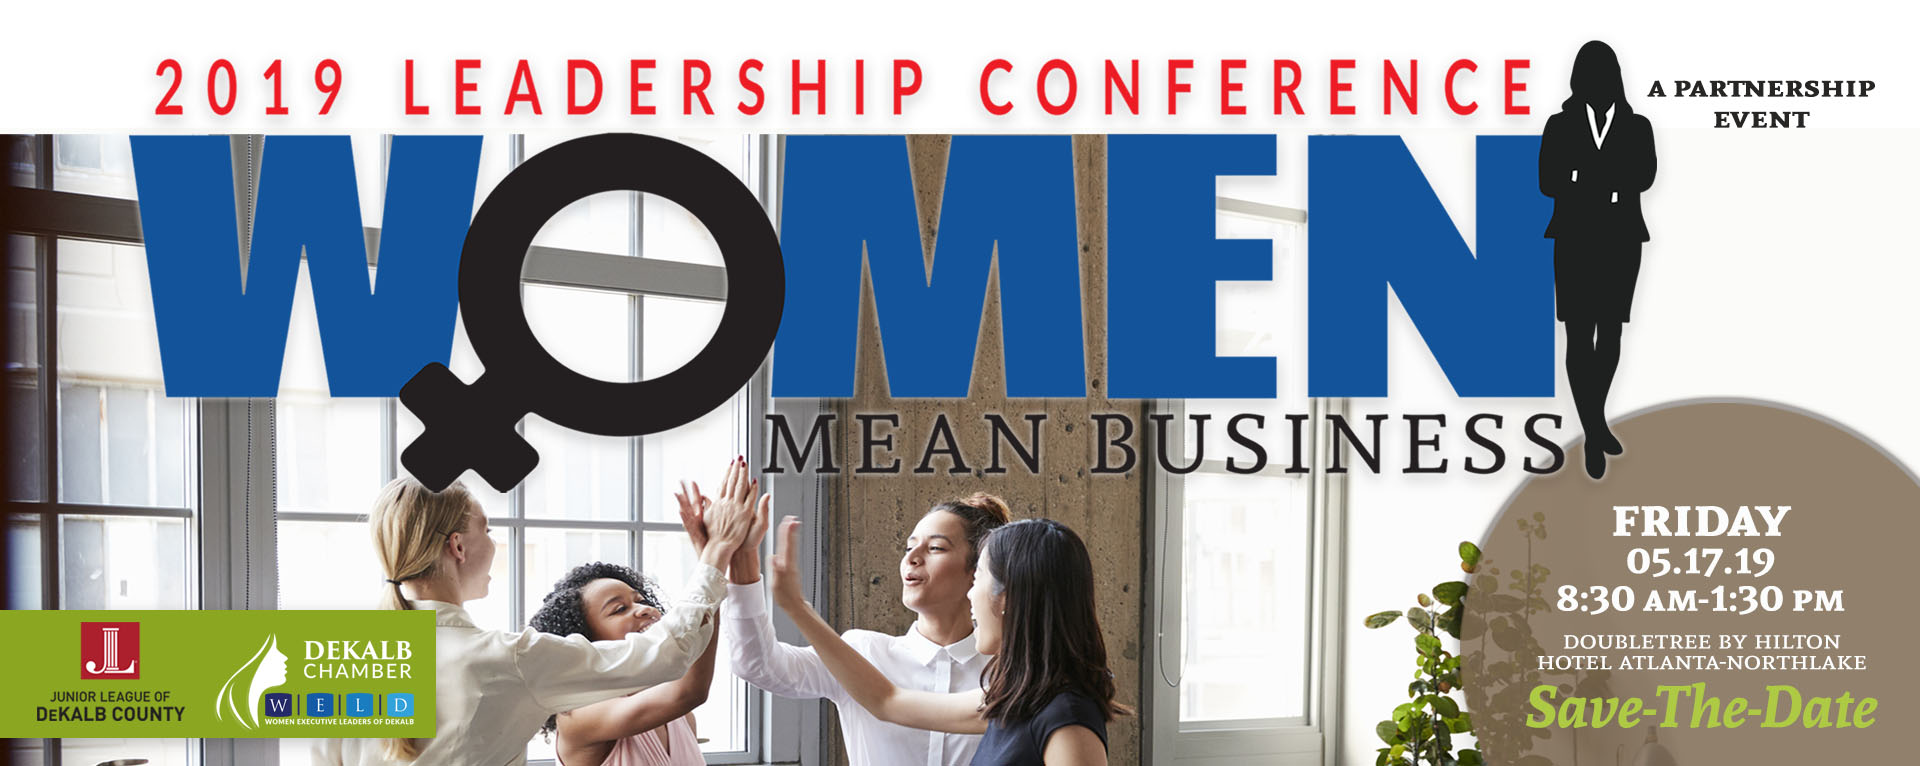 Women high-fiving each other at 2019 Women Mean Business Leadership Conference